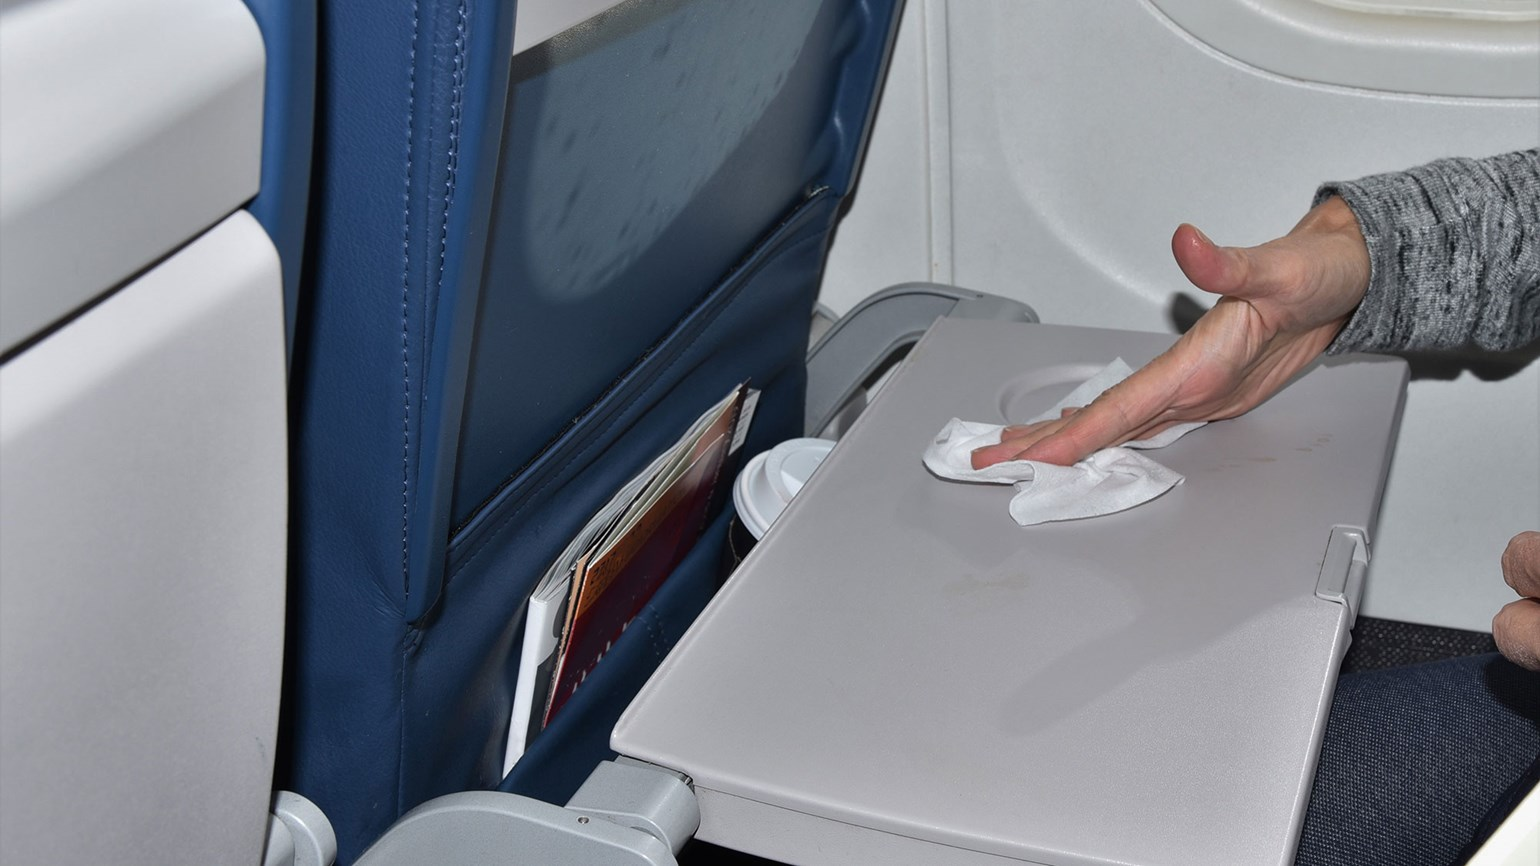 Airplane tray table wiped